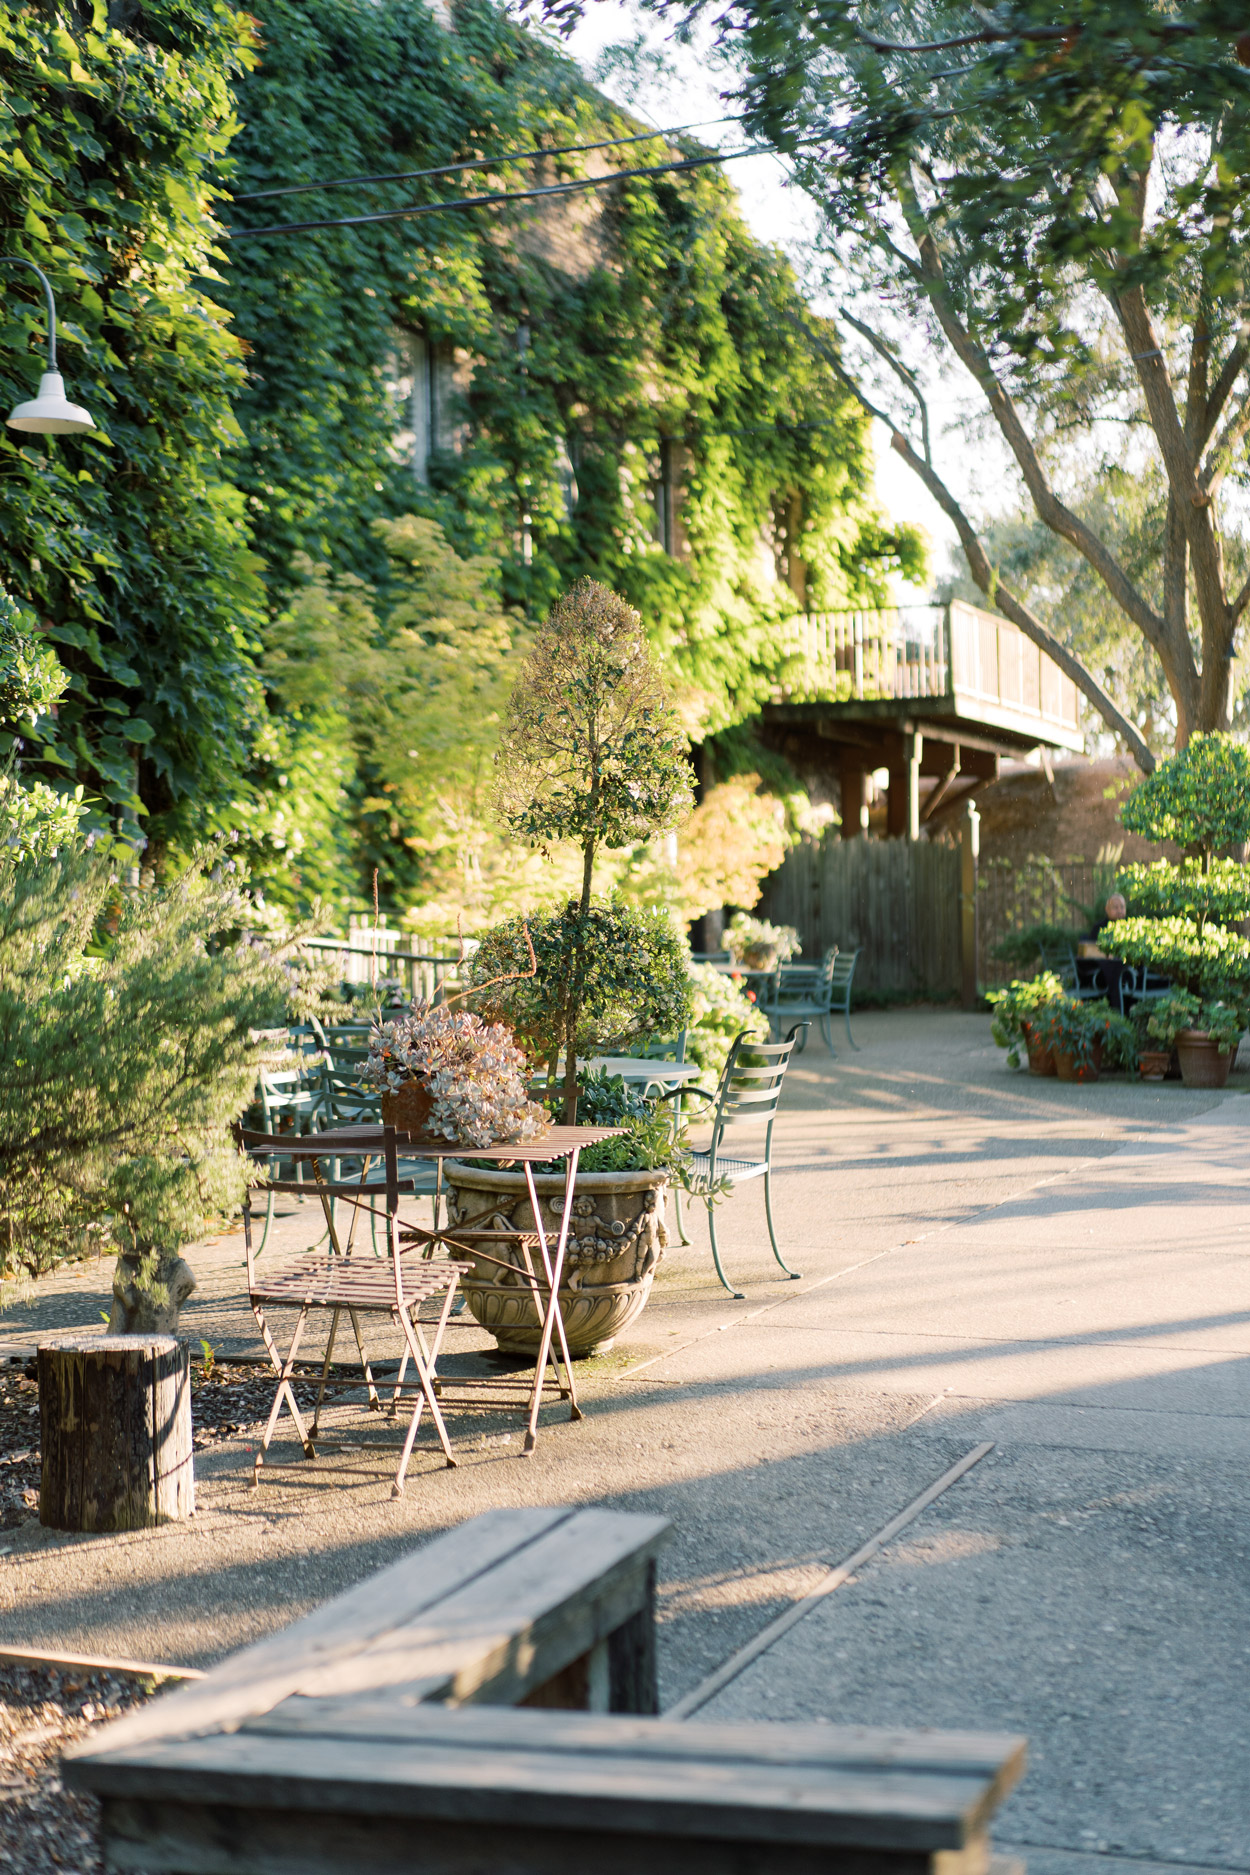 The River Mill outdoor patio with table chairs